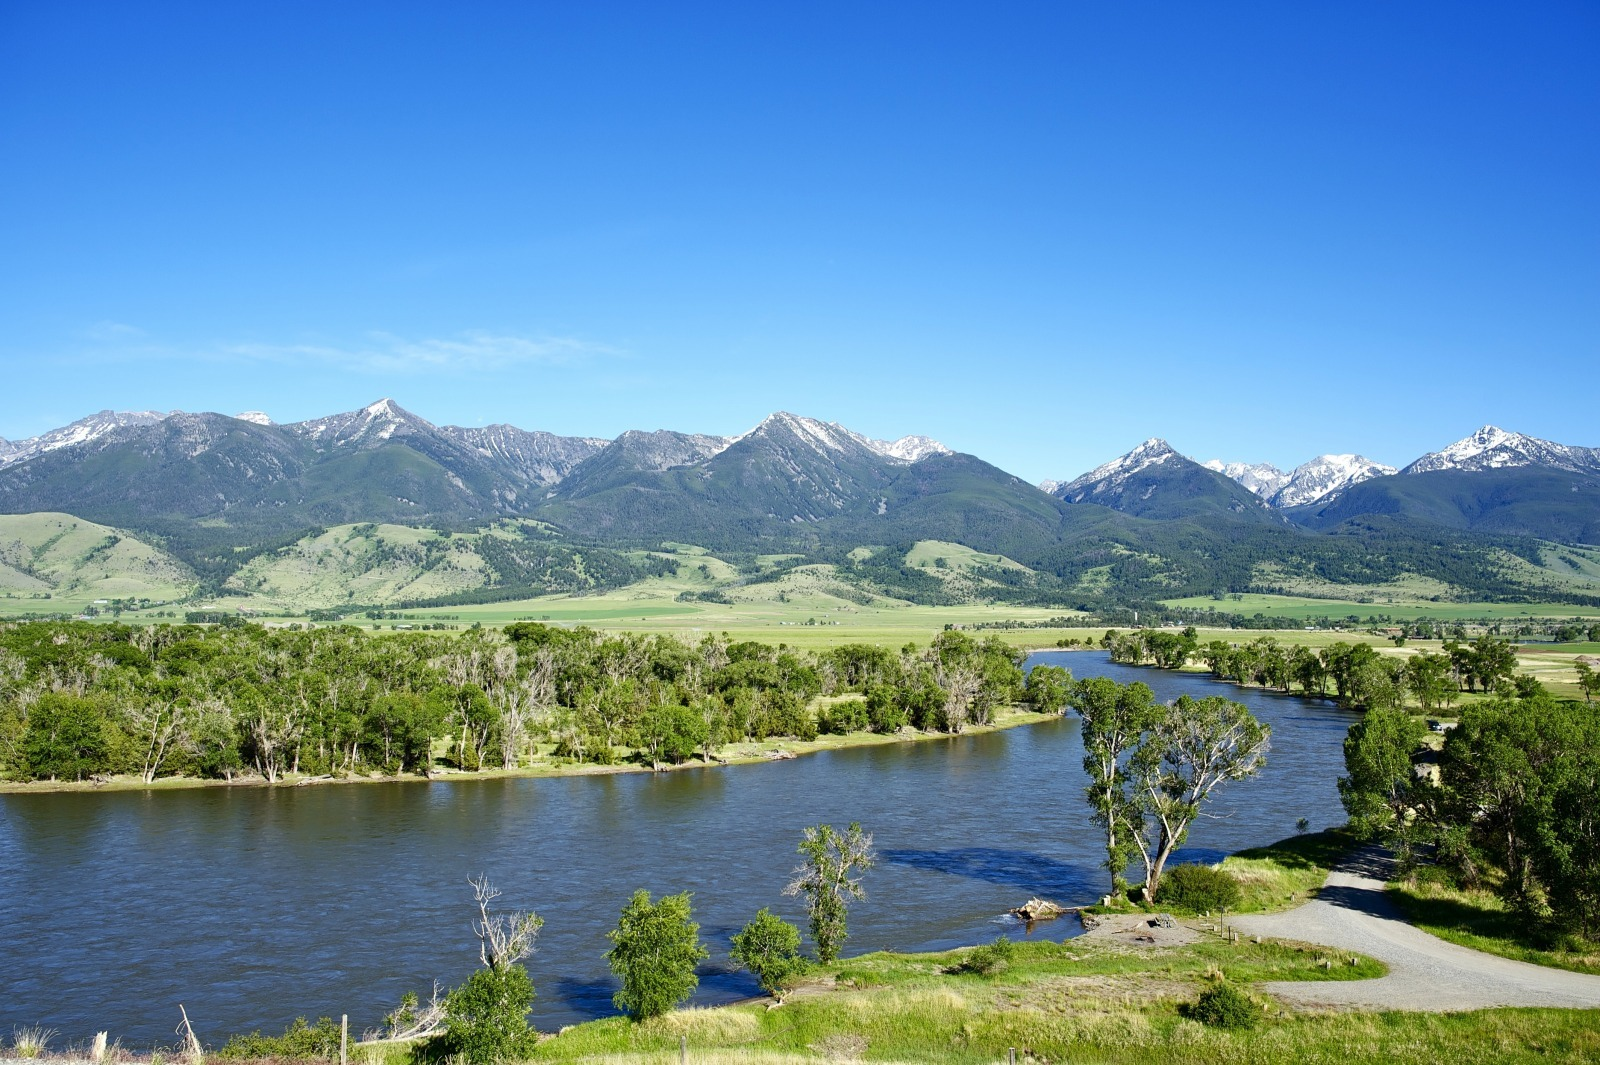 Yellowstone River and the Mountains